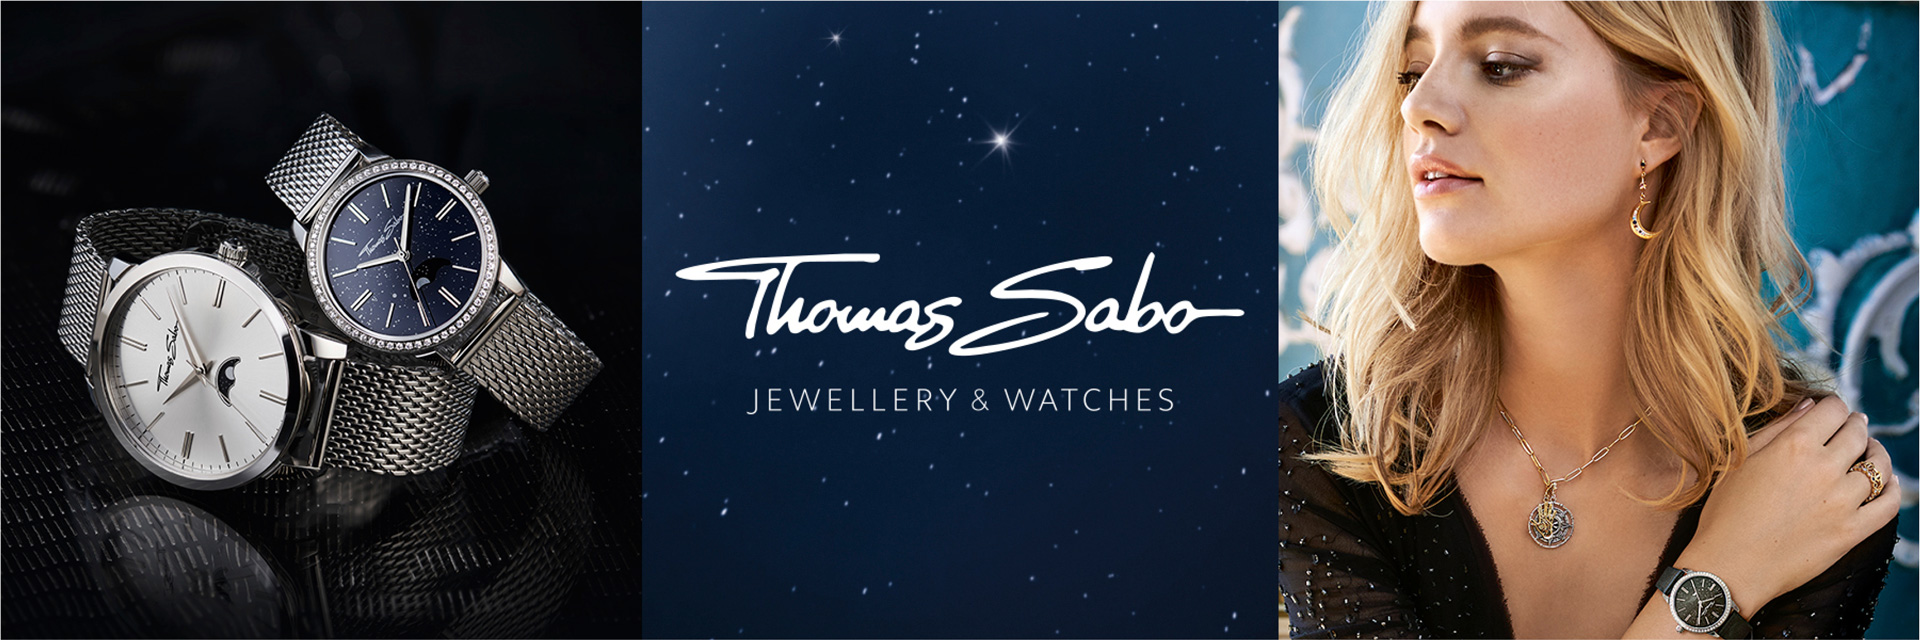 Thomas Sabo, Sterling Silver, Thomas Sabo Watches